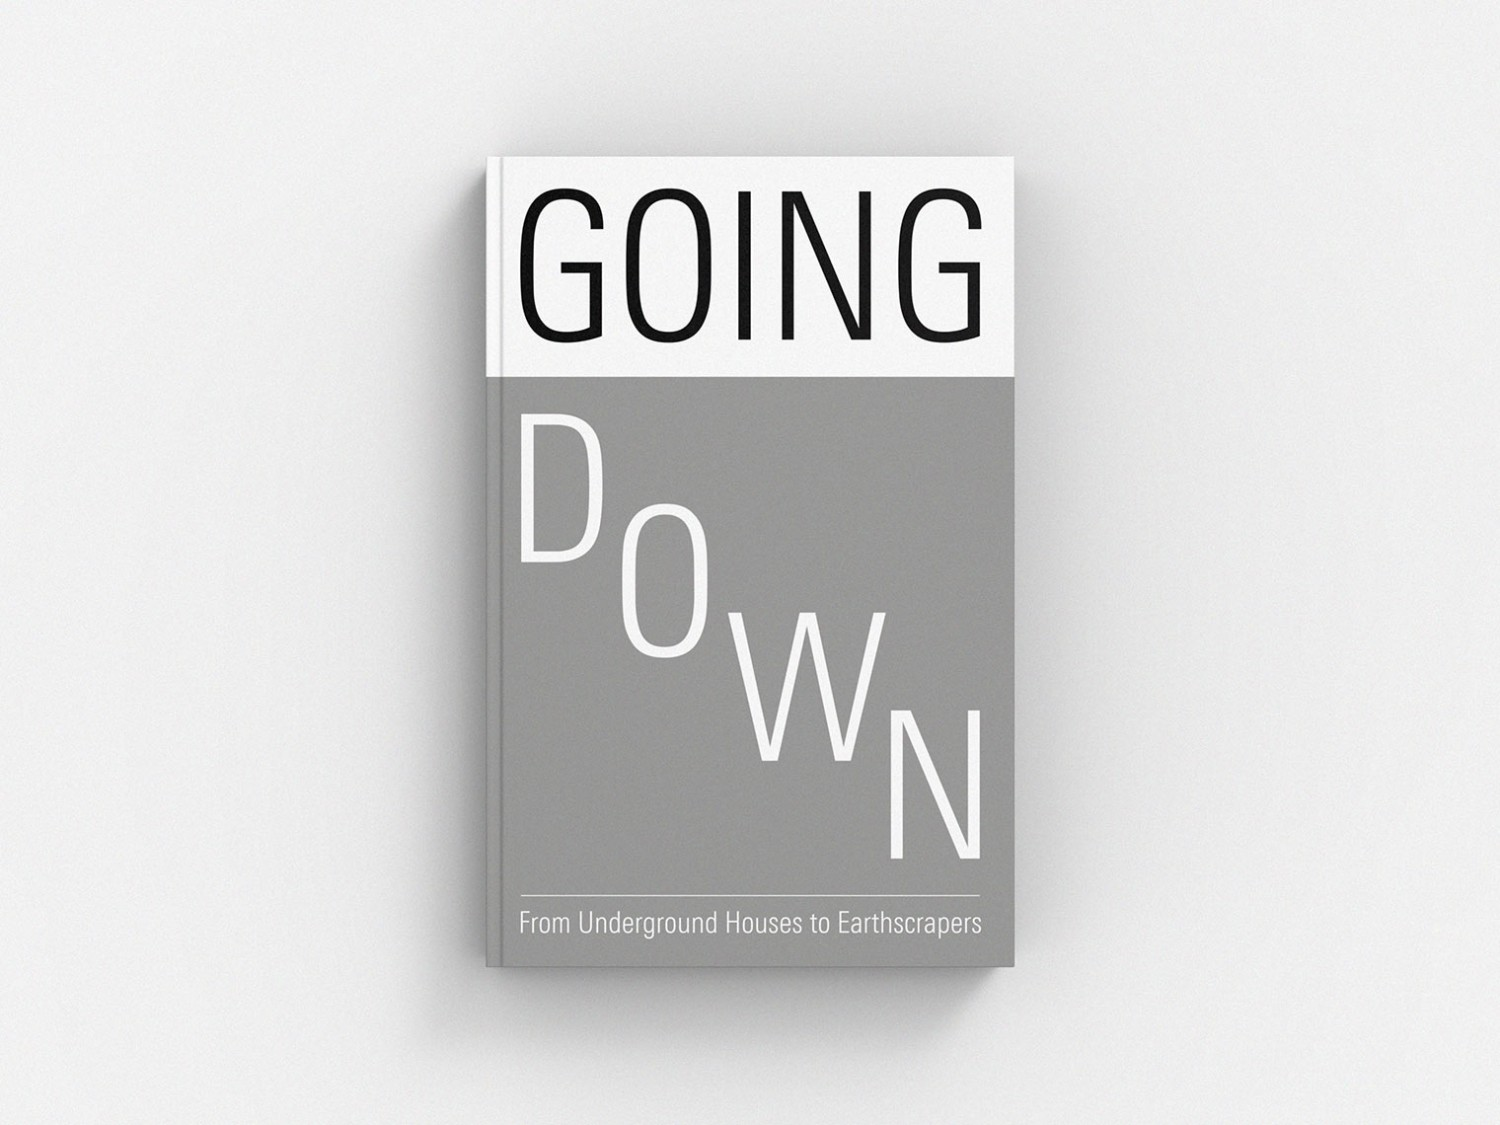 Going Down: From Underground Houses to Earthscrapers